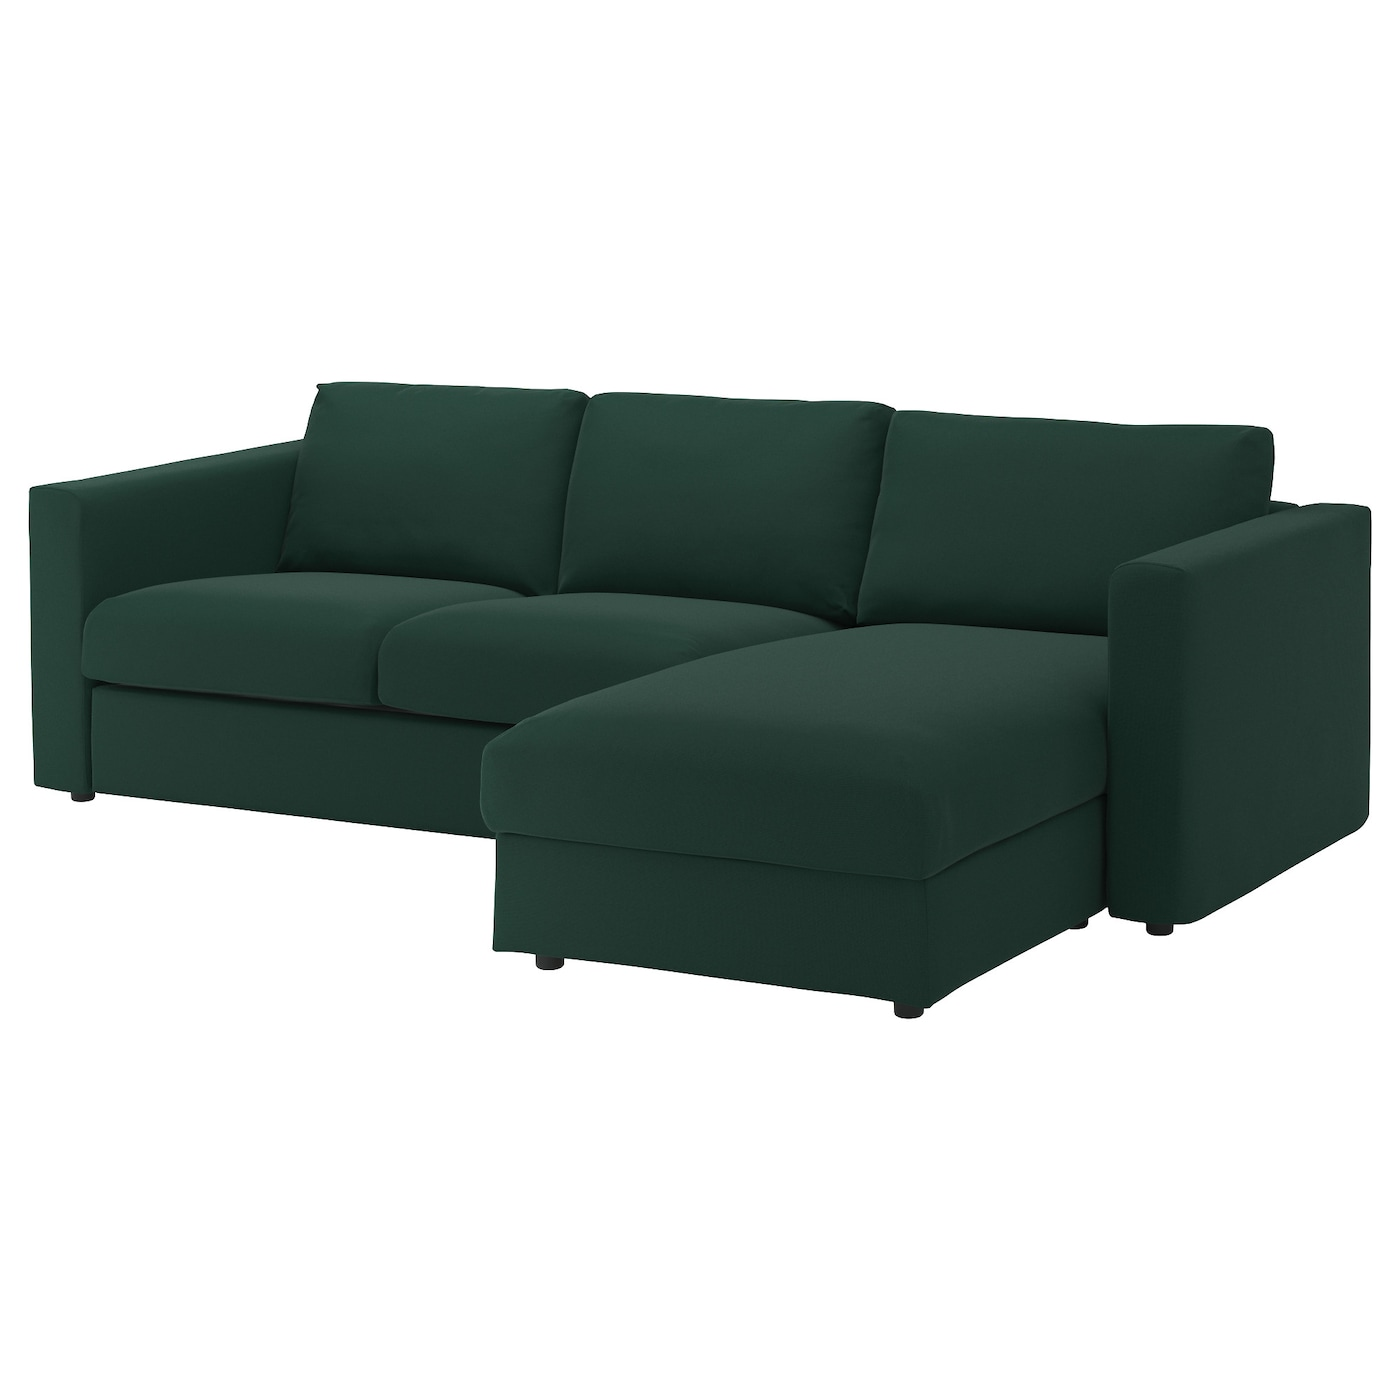 Vimle 3 seat sofa with chaise longue gunnared dark green for Chaise longue sofa